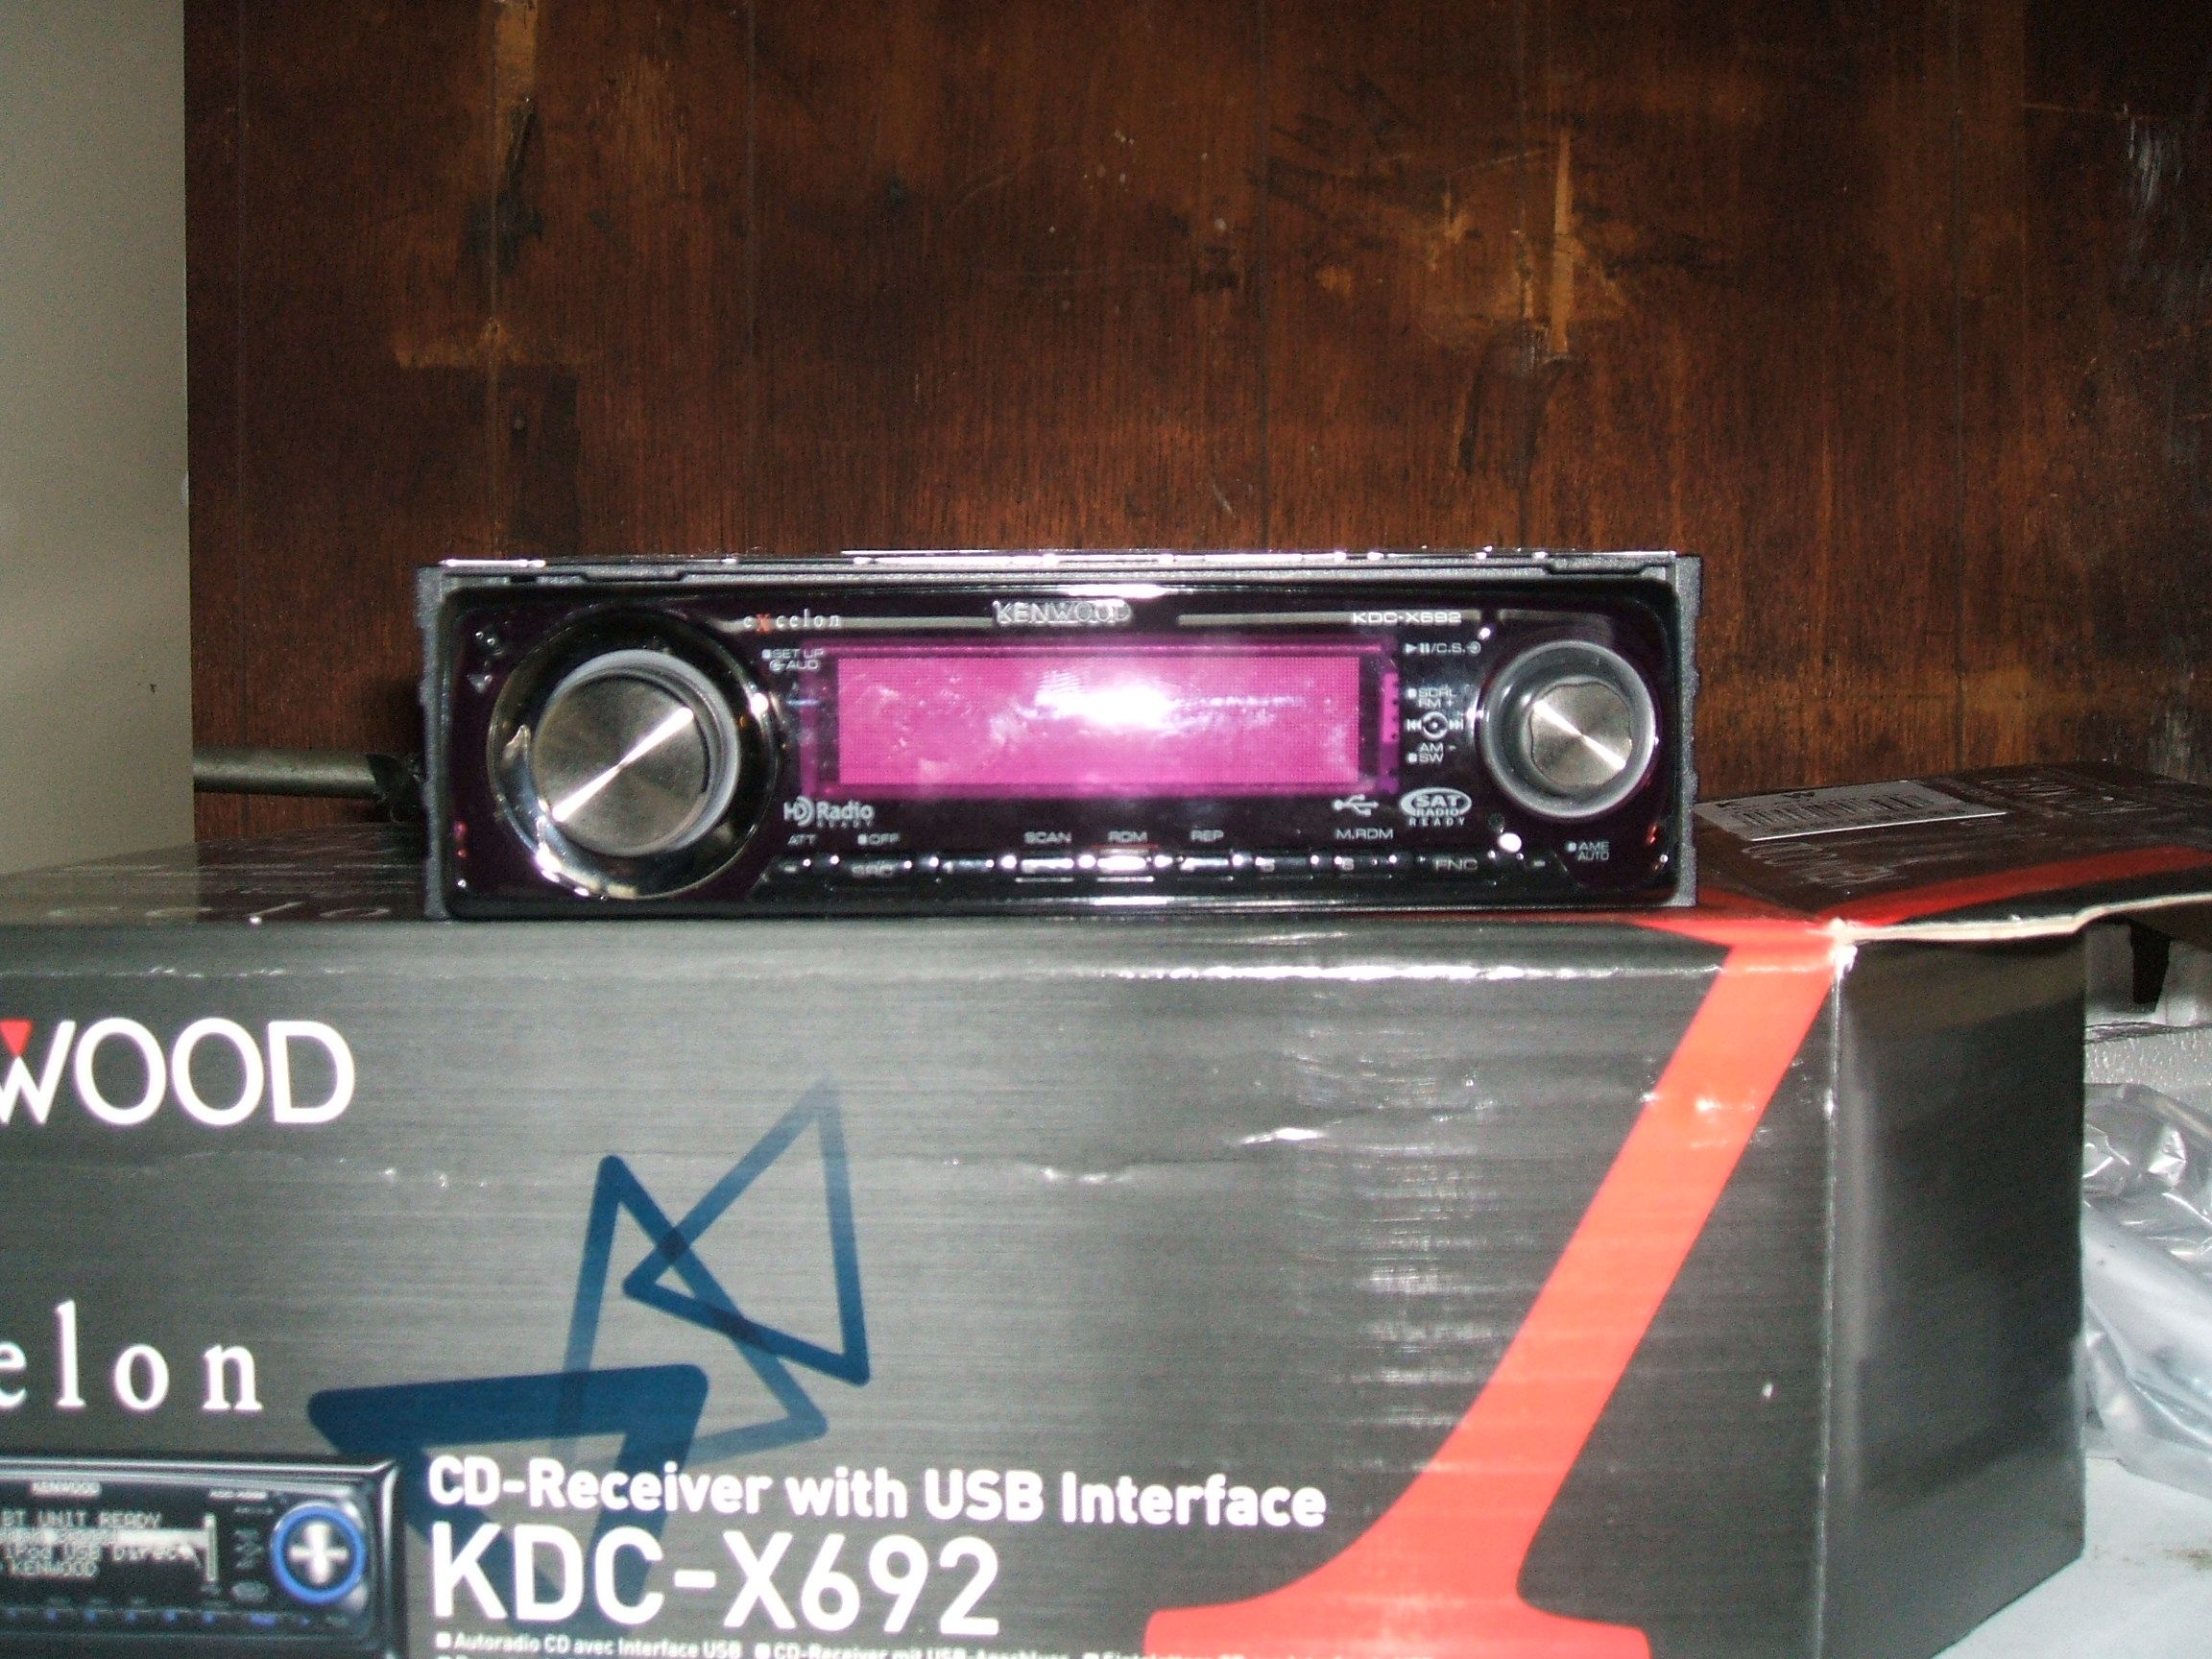 Kenwood KDC X691 002 for sale kenwood kdc x692 kenwood kdc 316s wiring diagram at n-0.co